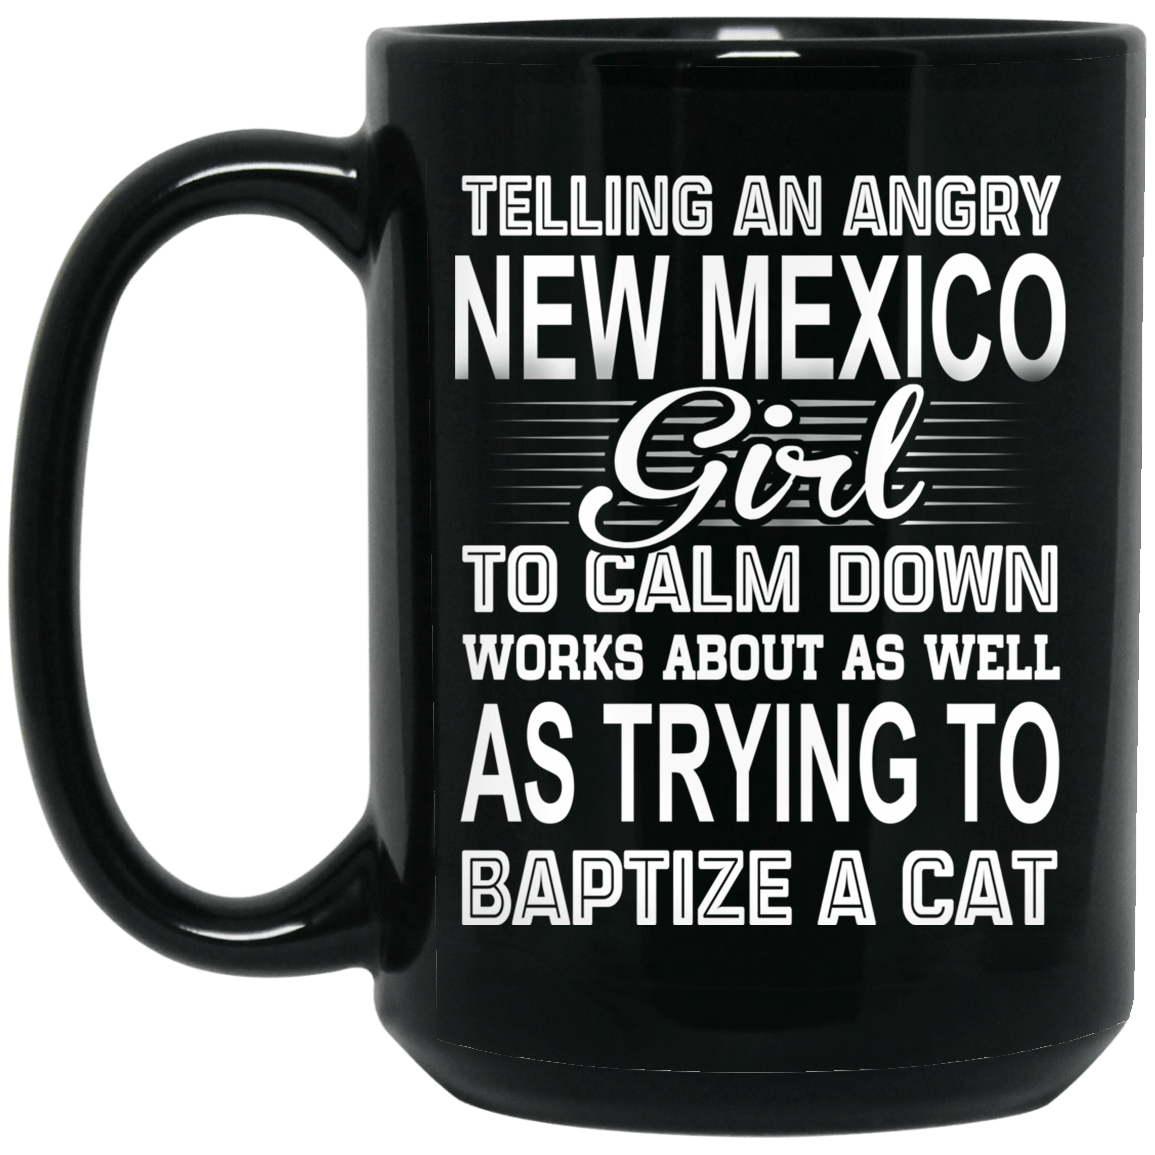 Telling An Angry New Mexico Girl To Calm Down Works About As Well As Trying To Baptize A Cat Mug 1066-10182-76151618-49311 - Tee Ript